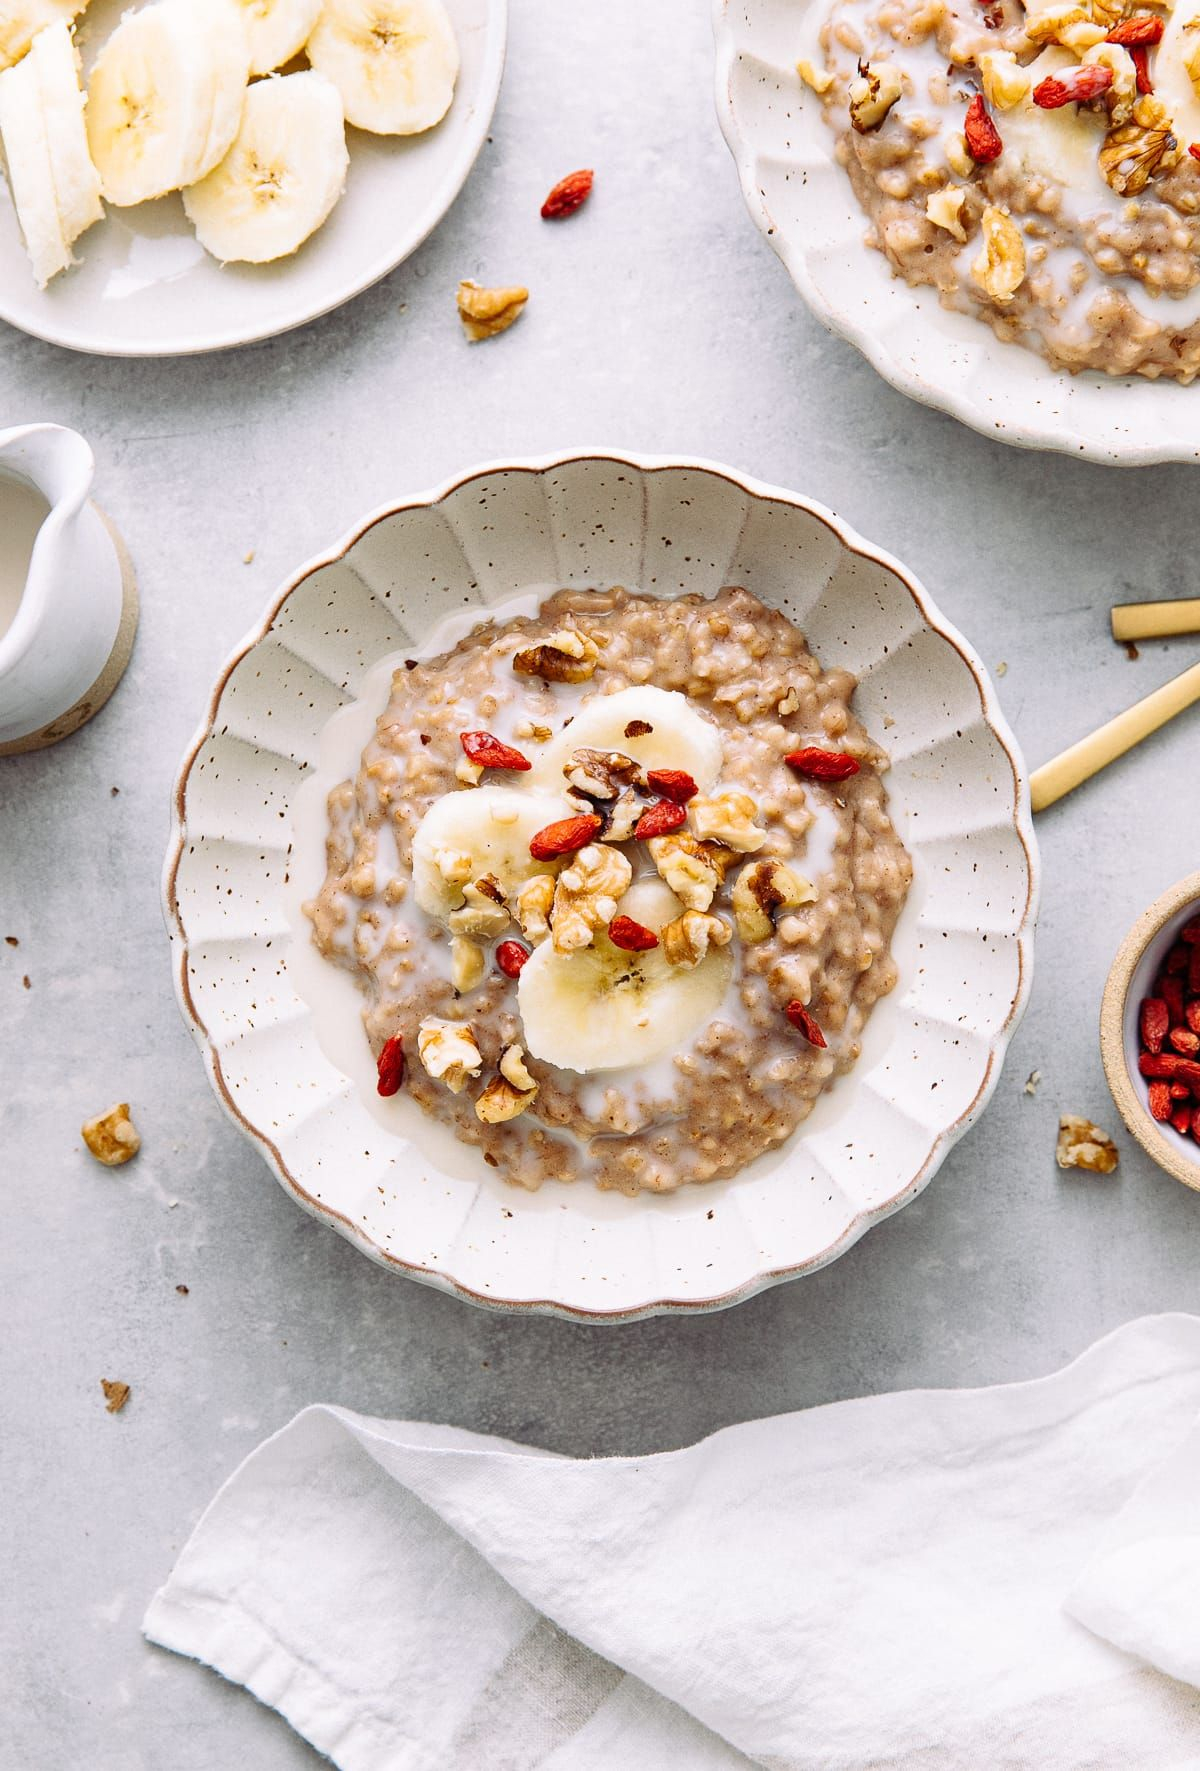 Slow Cooker Overnight Steel-Cut Oatmeal recipe with almond milk, bananas, cinnamon, vanilla and naturally sweetened with pure maple syrup is a healthy and delicious way to start your day! #overnightsteelcutoatmeal #healthyrecipes #veganrecipes #plantbased #steelcutoatmeal #steelcutoats